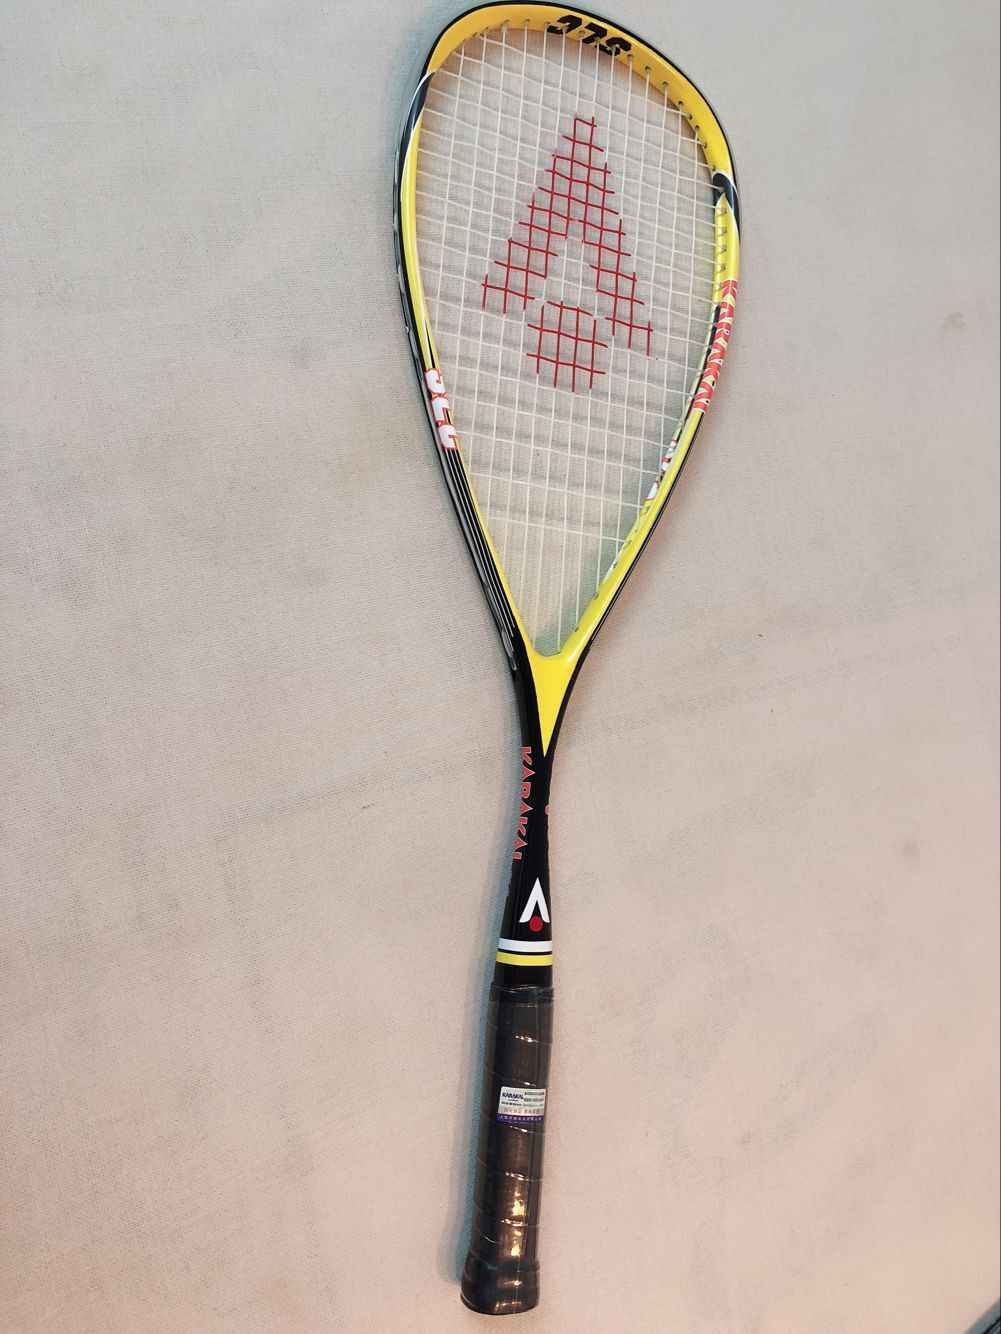 Genuine Karakal Squash Racket 130g Slc Carbon Fiber Material For Squash Sport Training Match Game For Players Learners Raquete